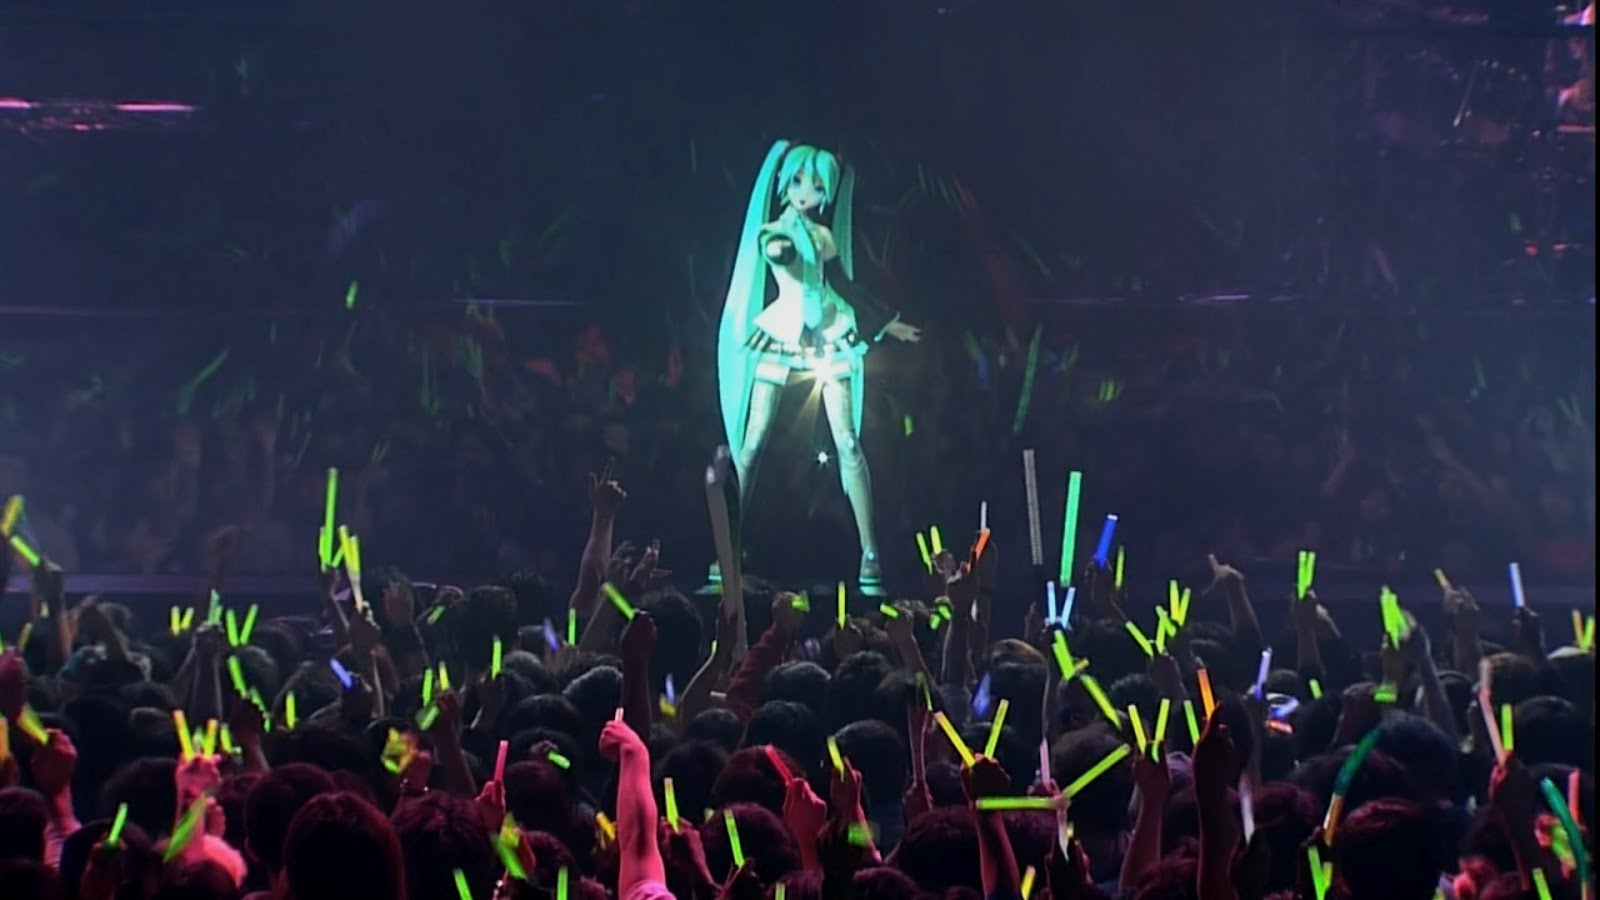 miku_hatsune_39_giving_day